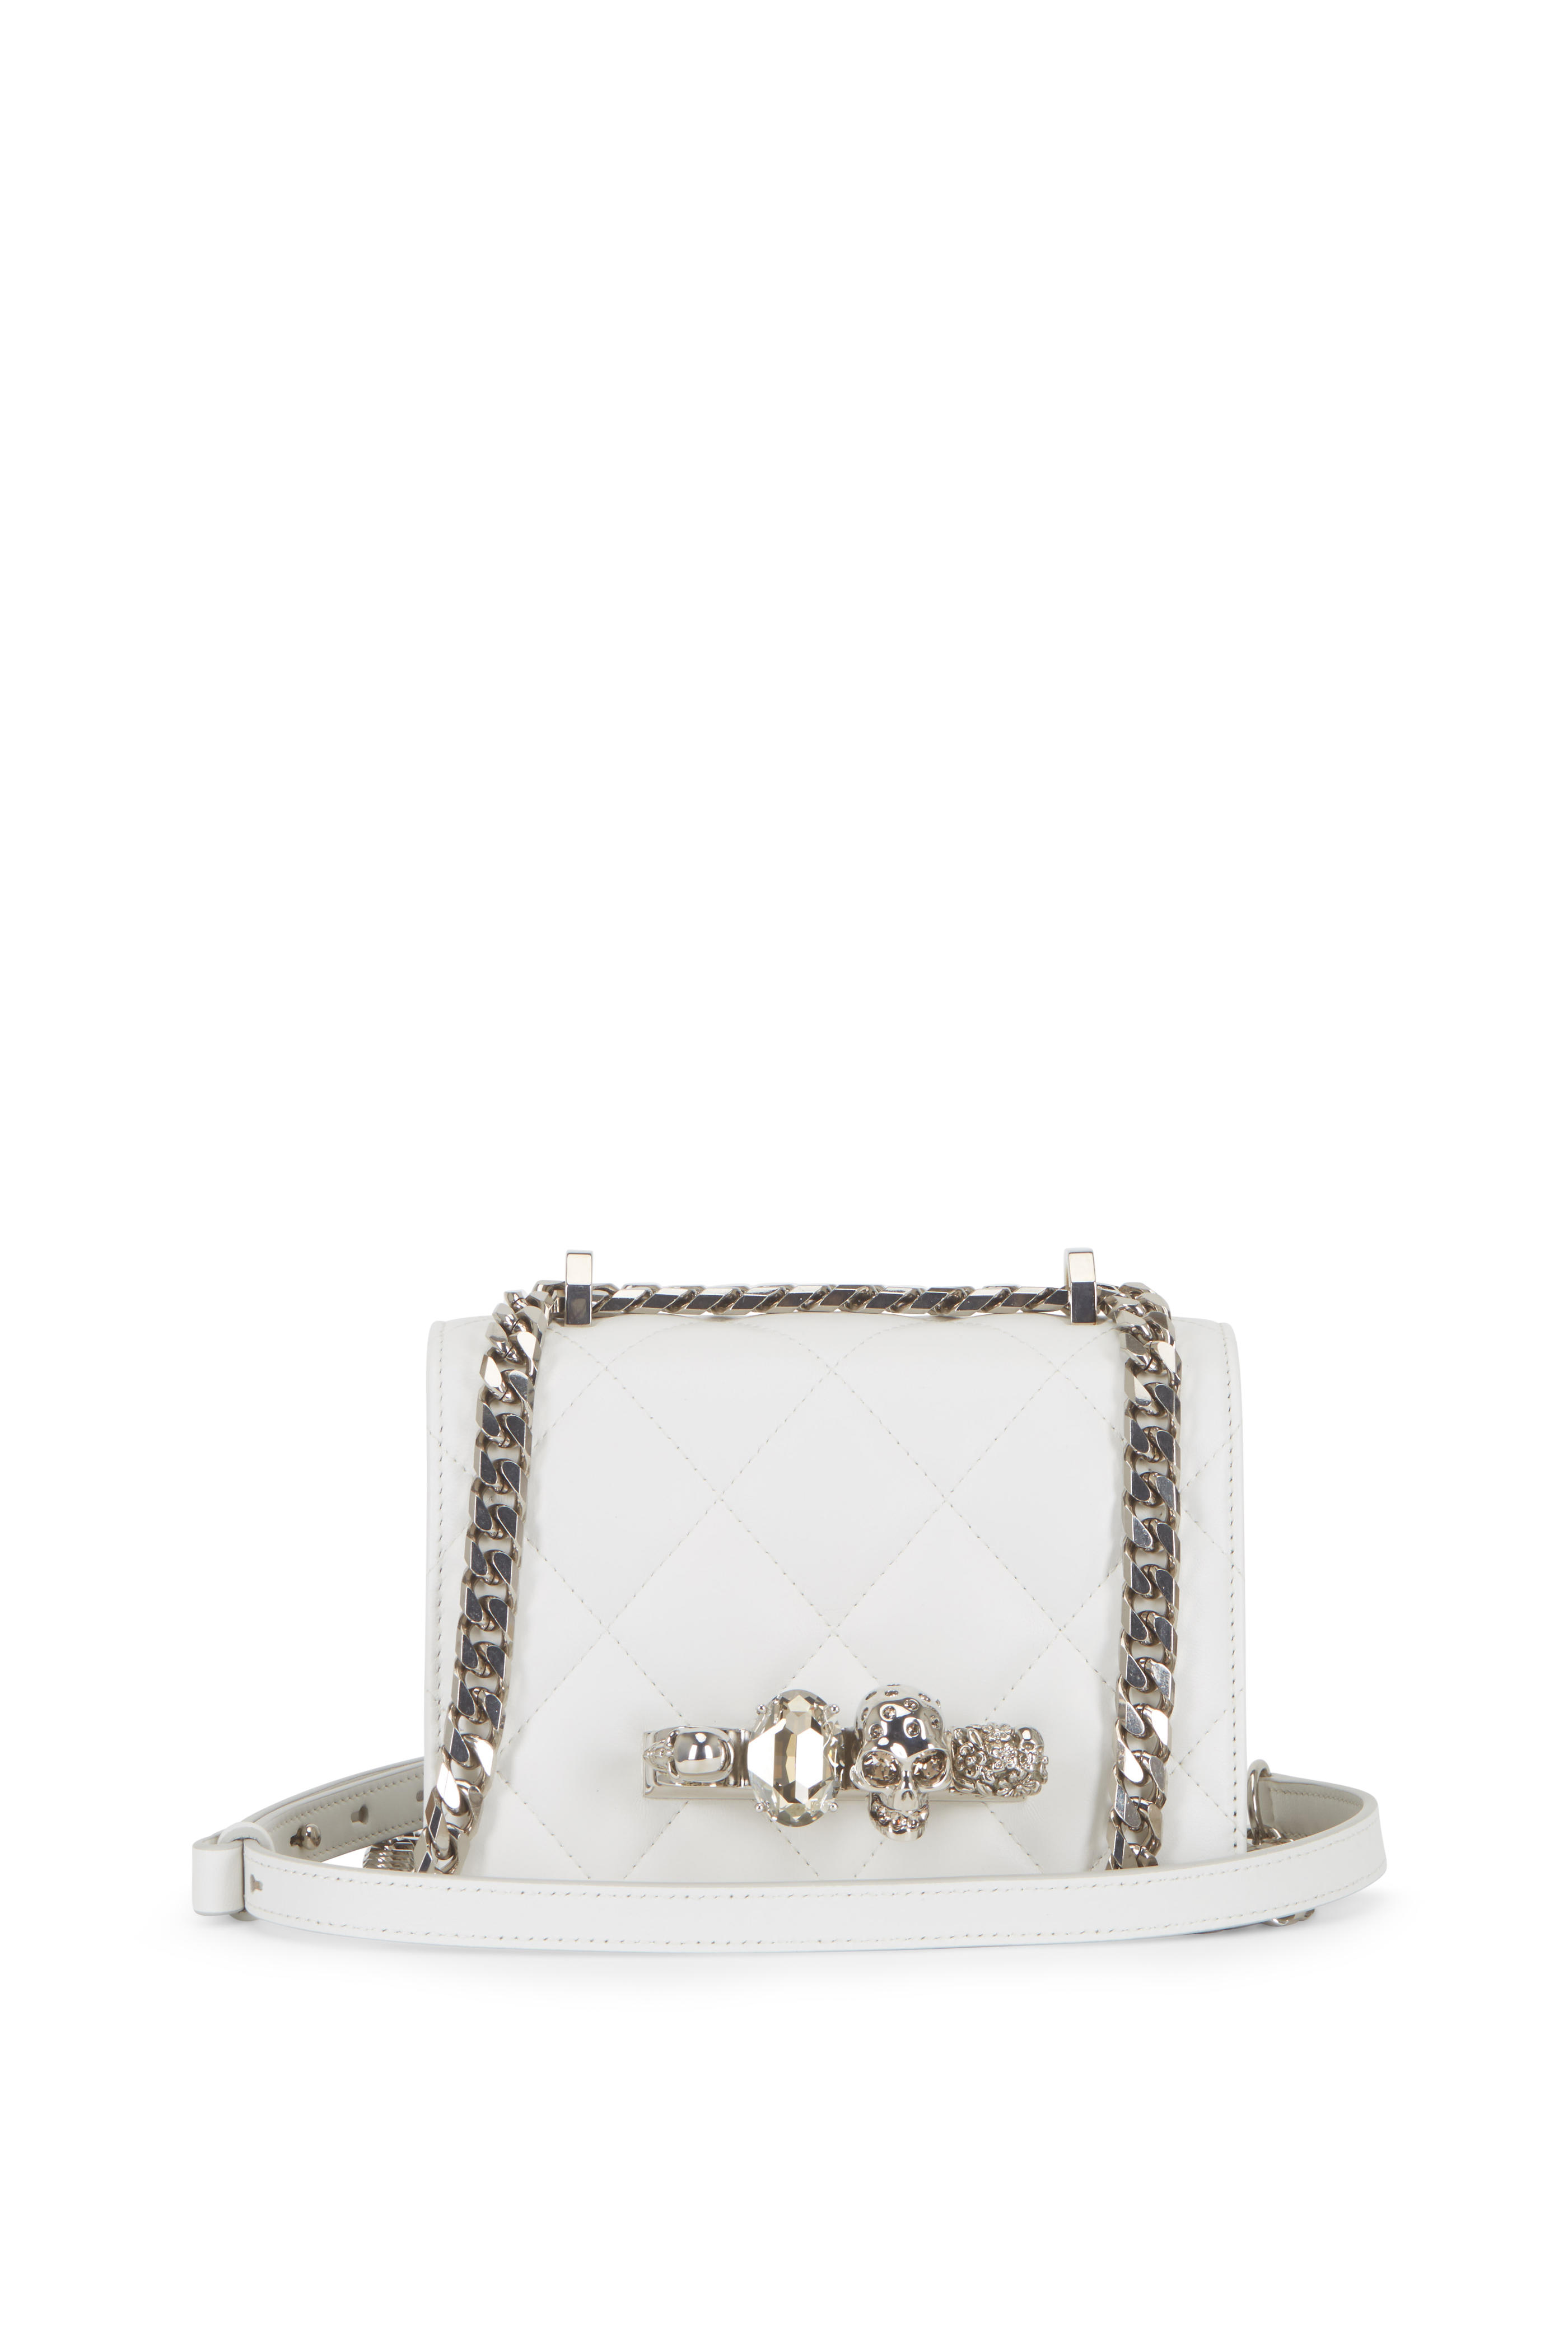 8e502623f Alexander McQueen - White Quilted Leather Jeweled Knuckle Shoulder ...